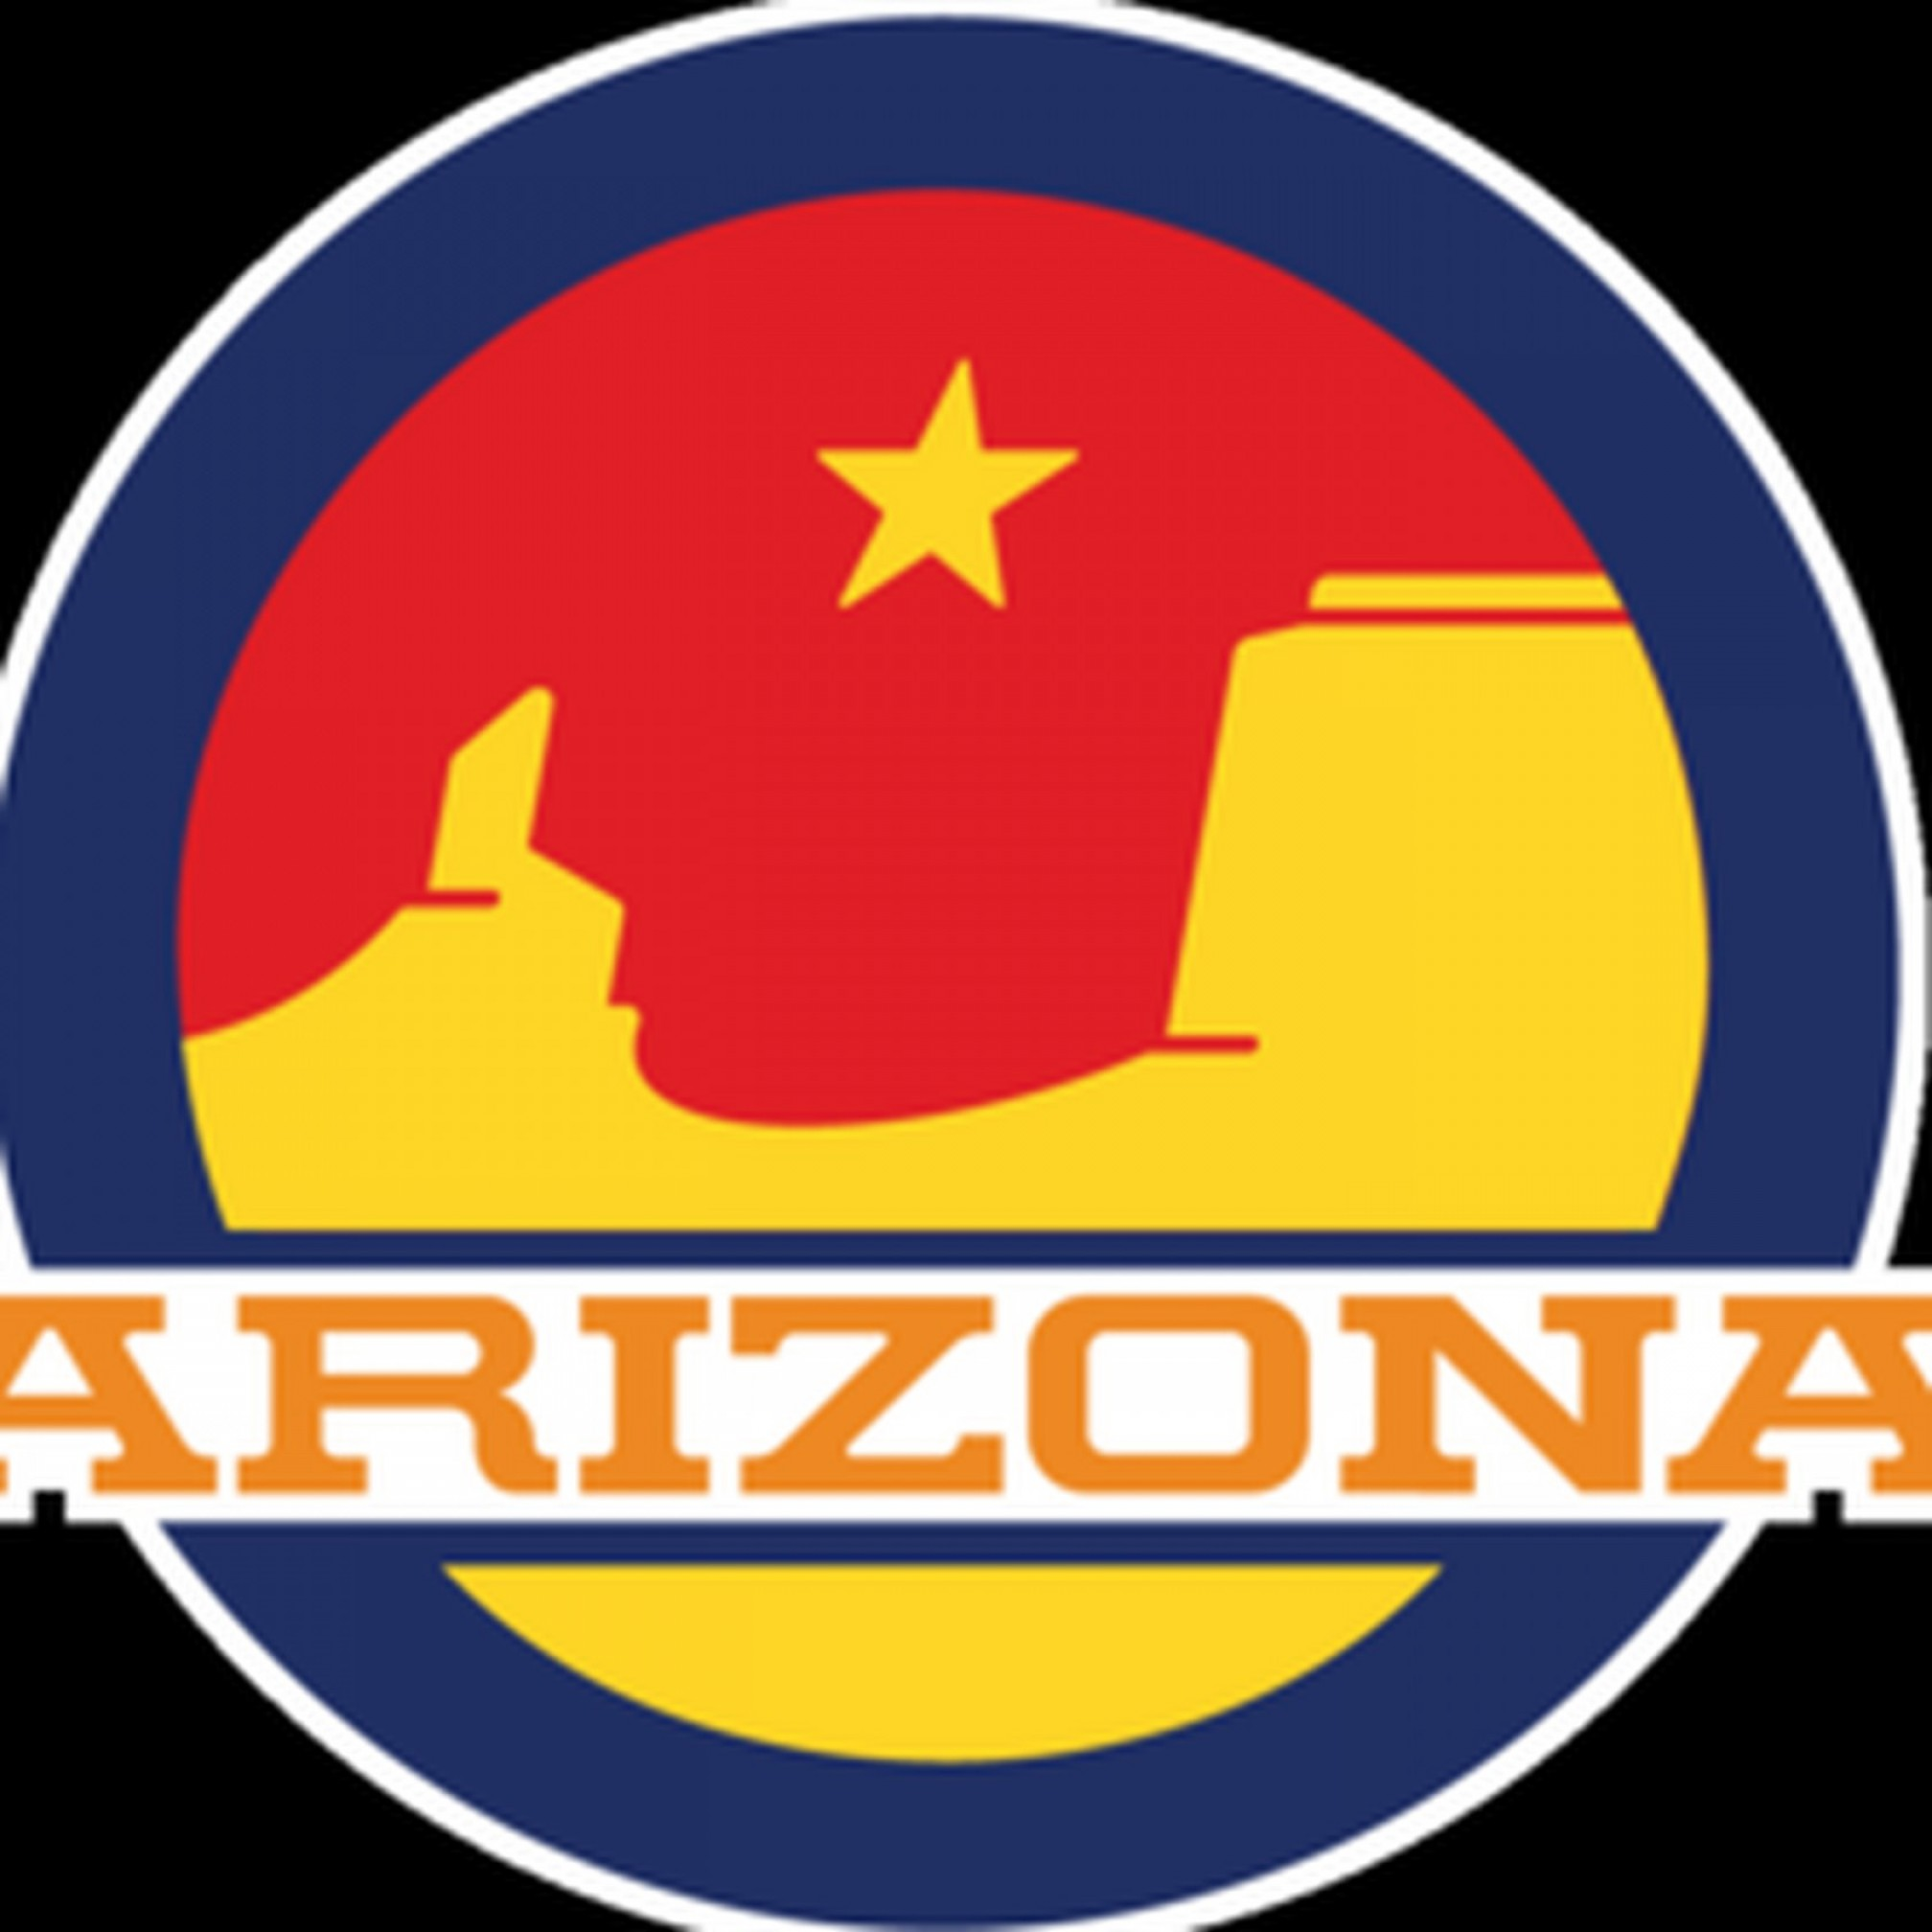 Uofa Logo Vector: Asu New Uniforms Unveiled Fonts And Forks For All